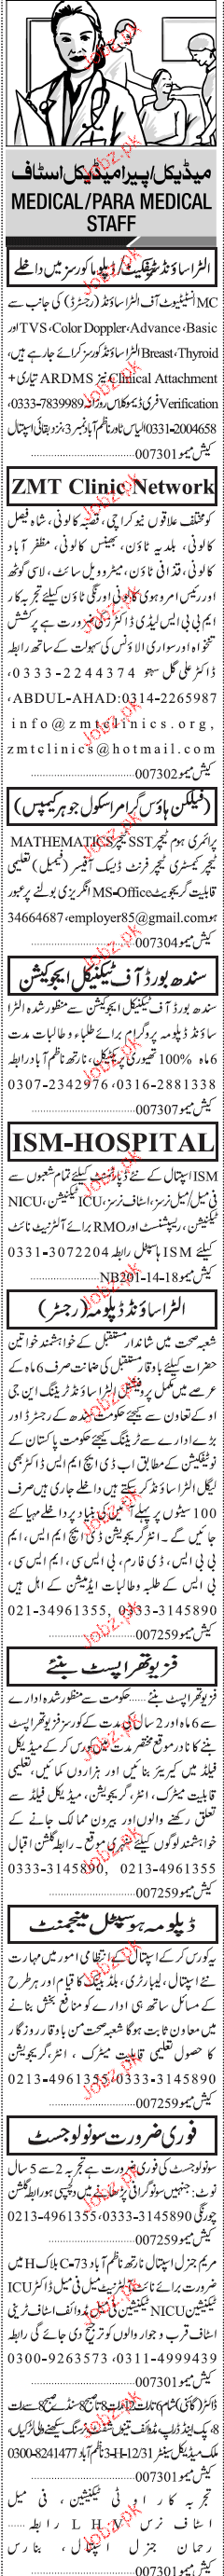 Lady Doctors, ICU Technicians, Staff Nurses Job Opportunity